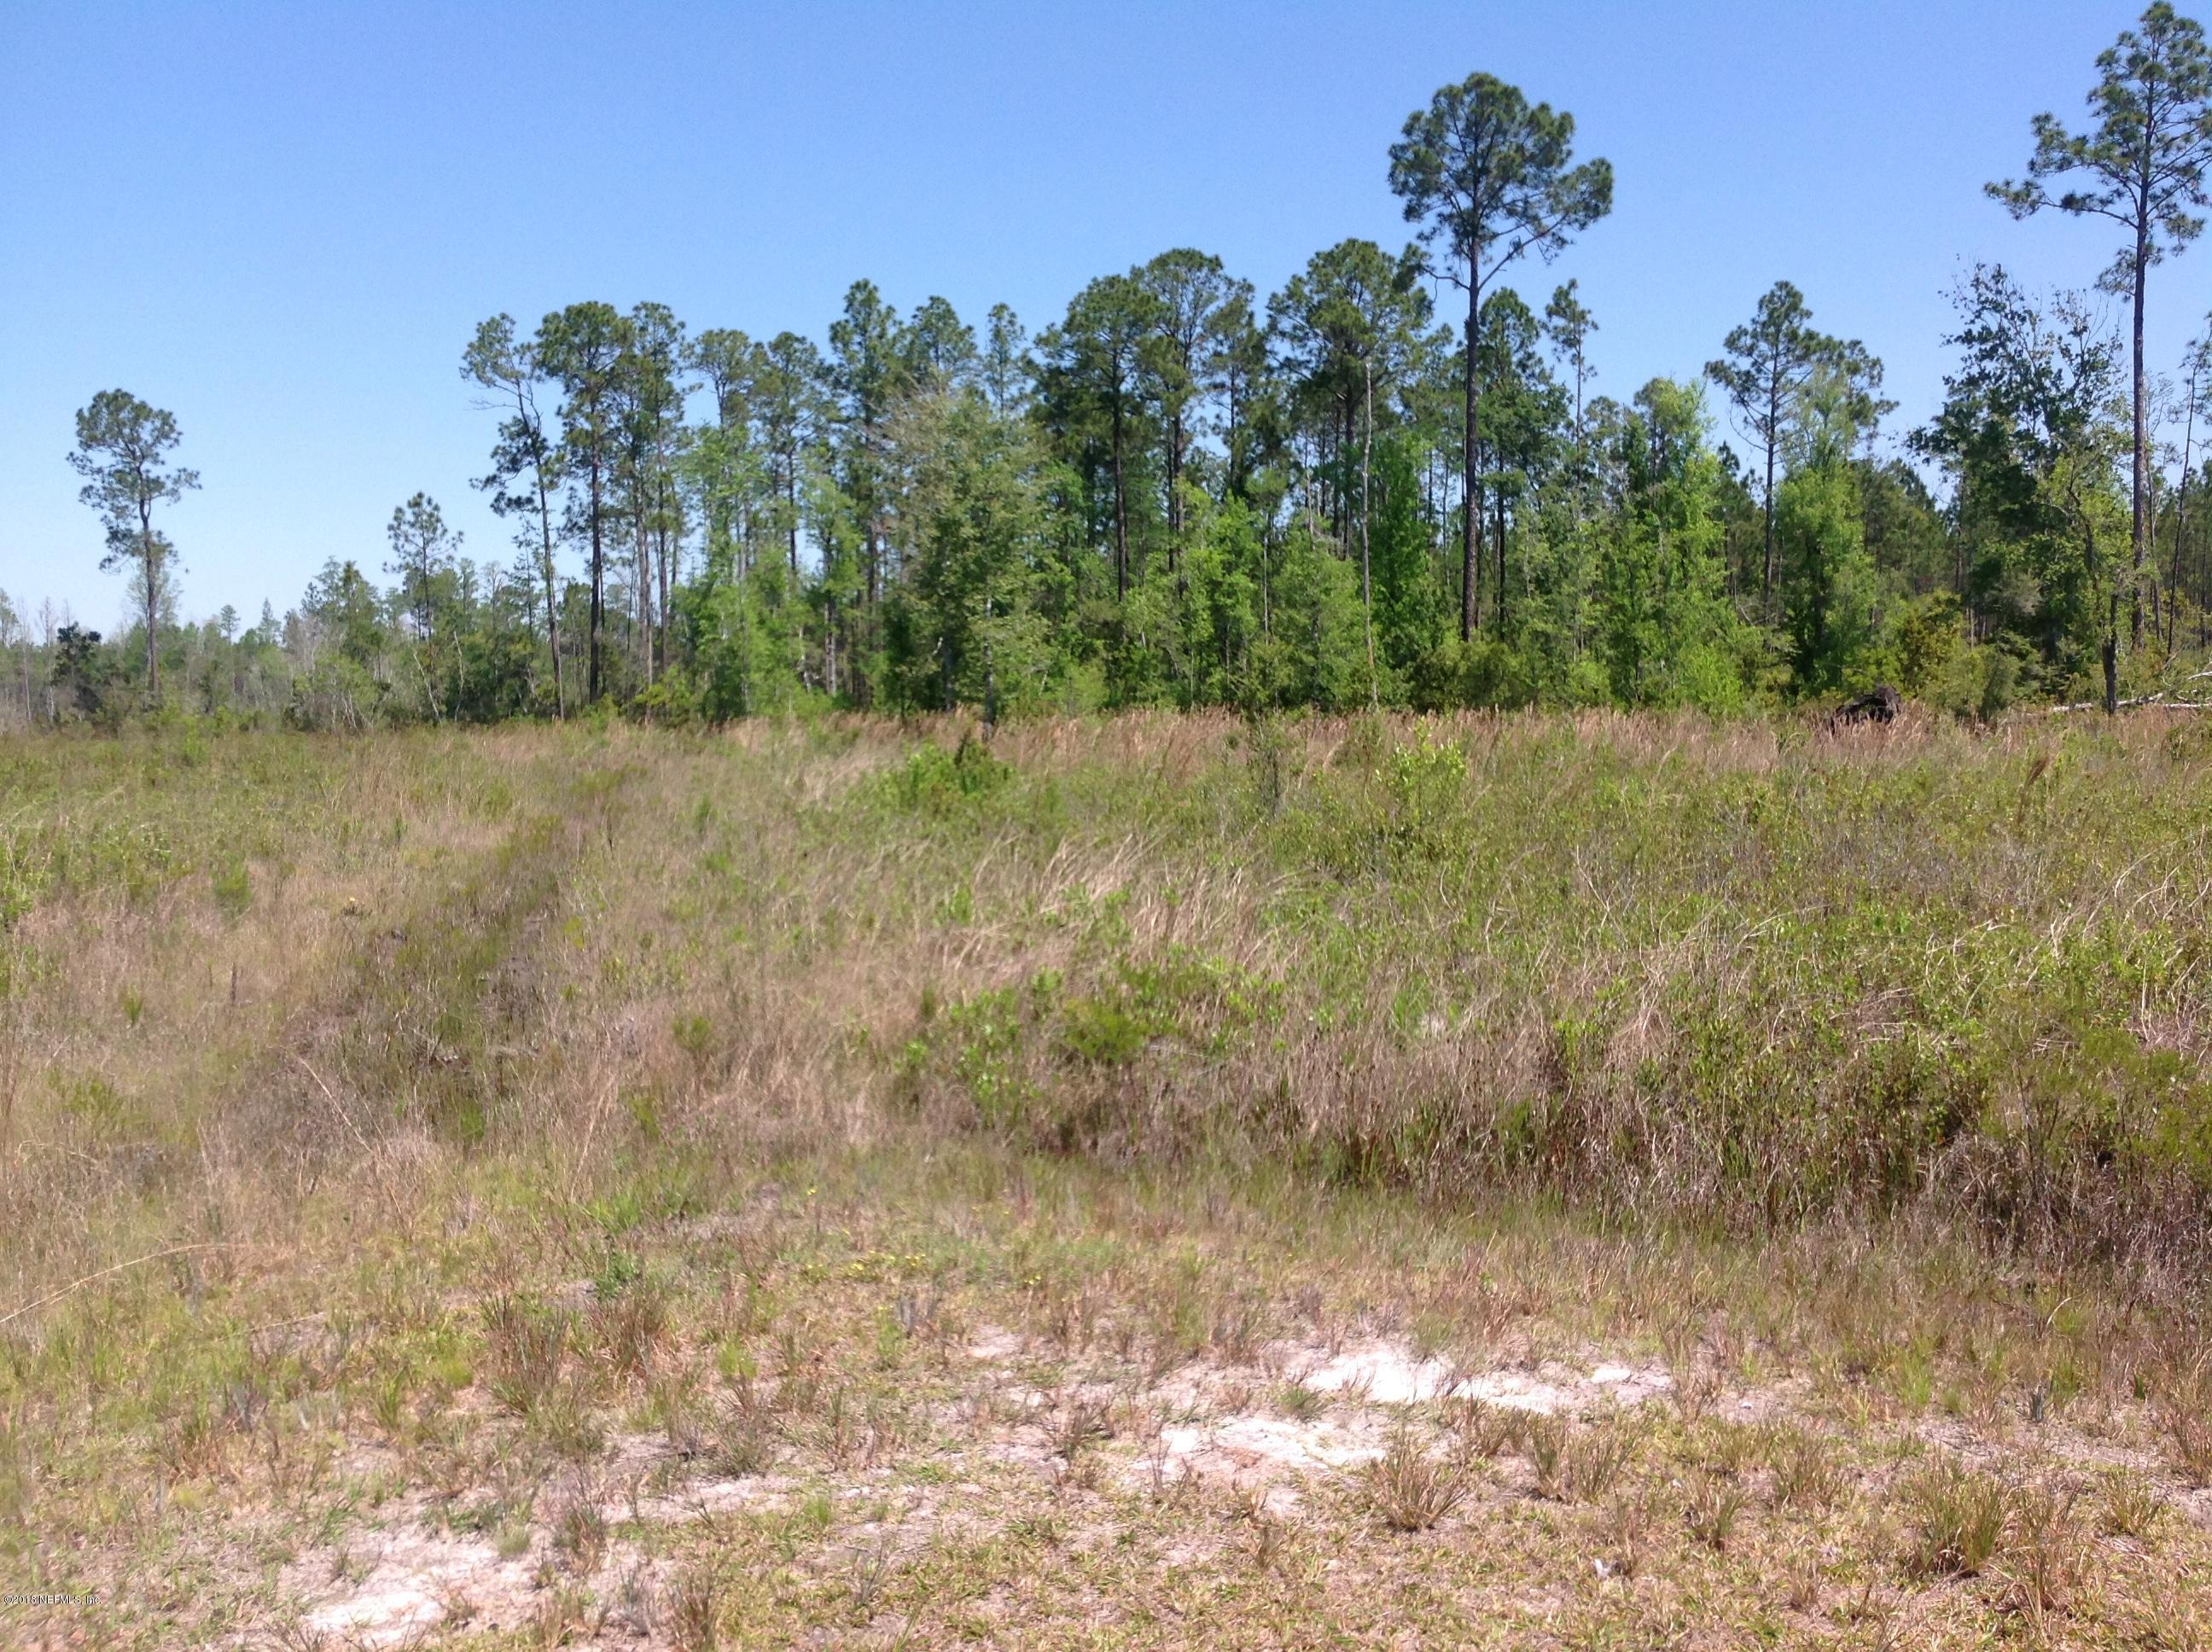 0 CHEYENNE, GLEN ST. MARY, FLORIDA 32040, ,Vacant land,For sale,CHEYENNE,934066